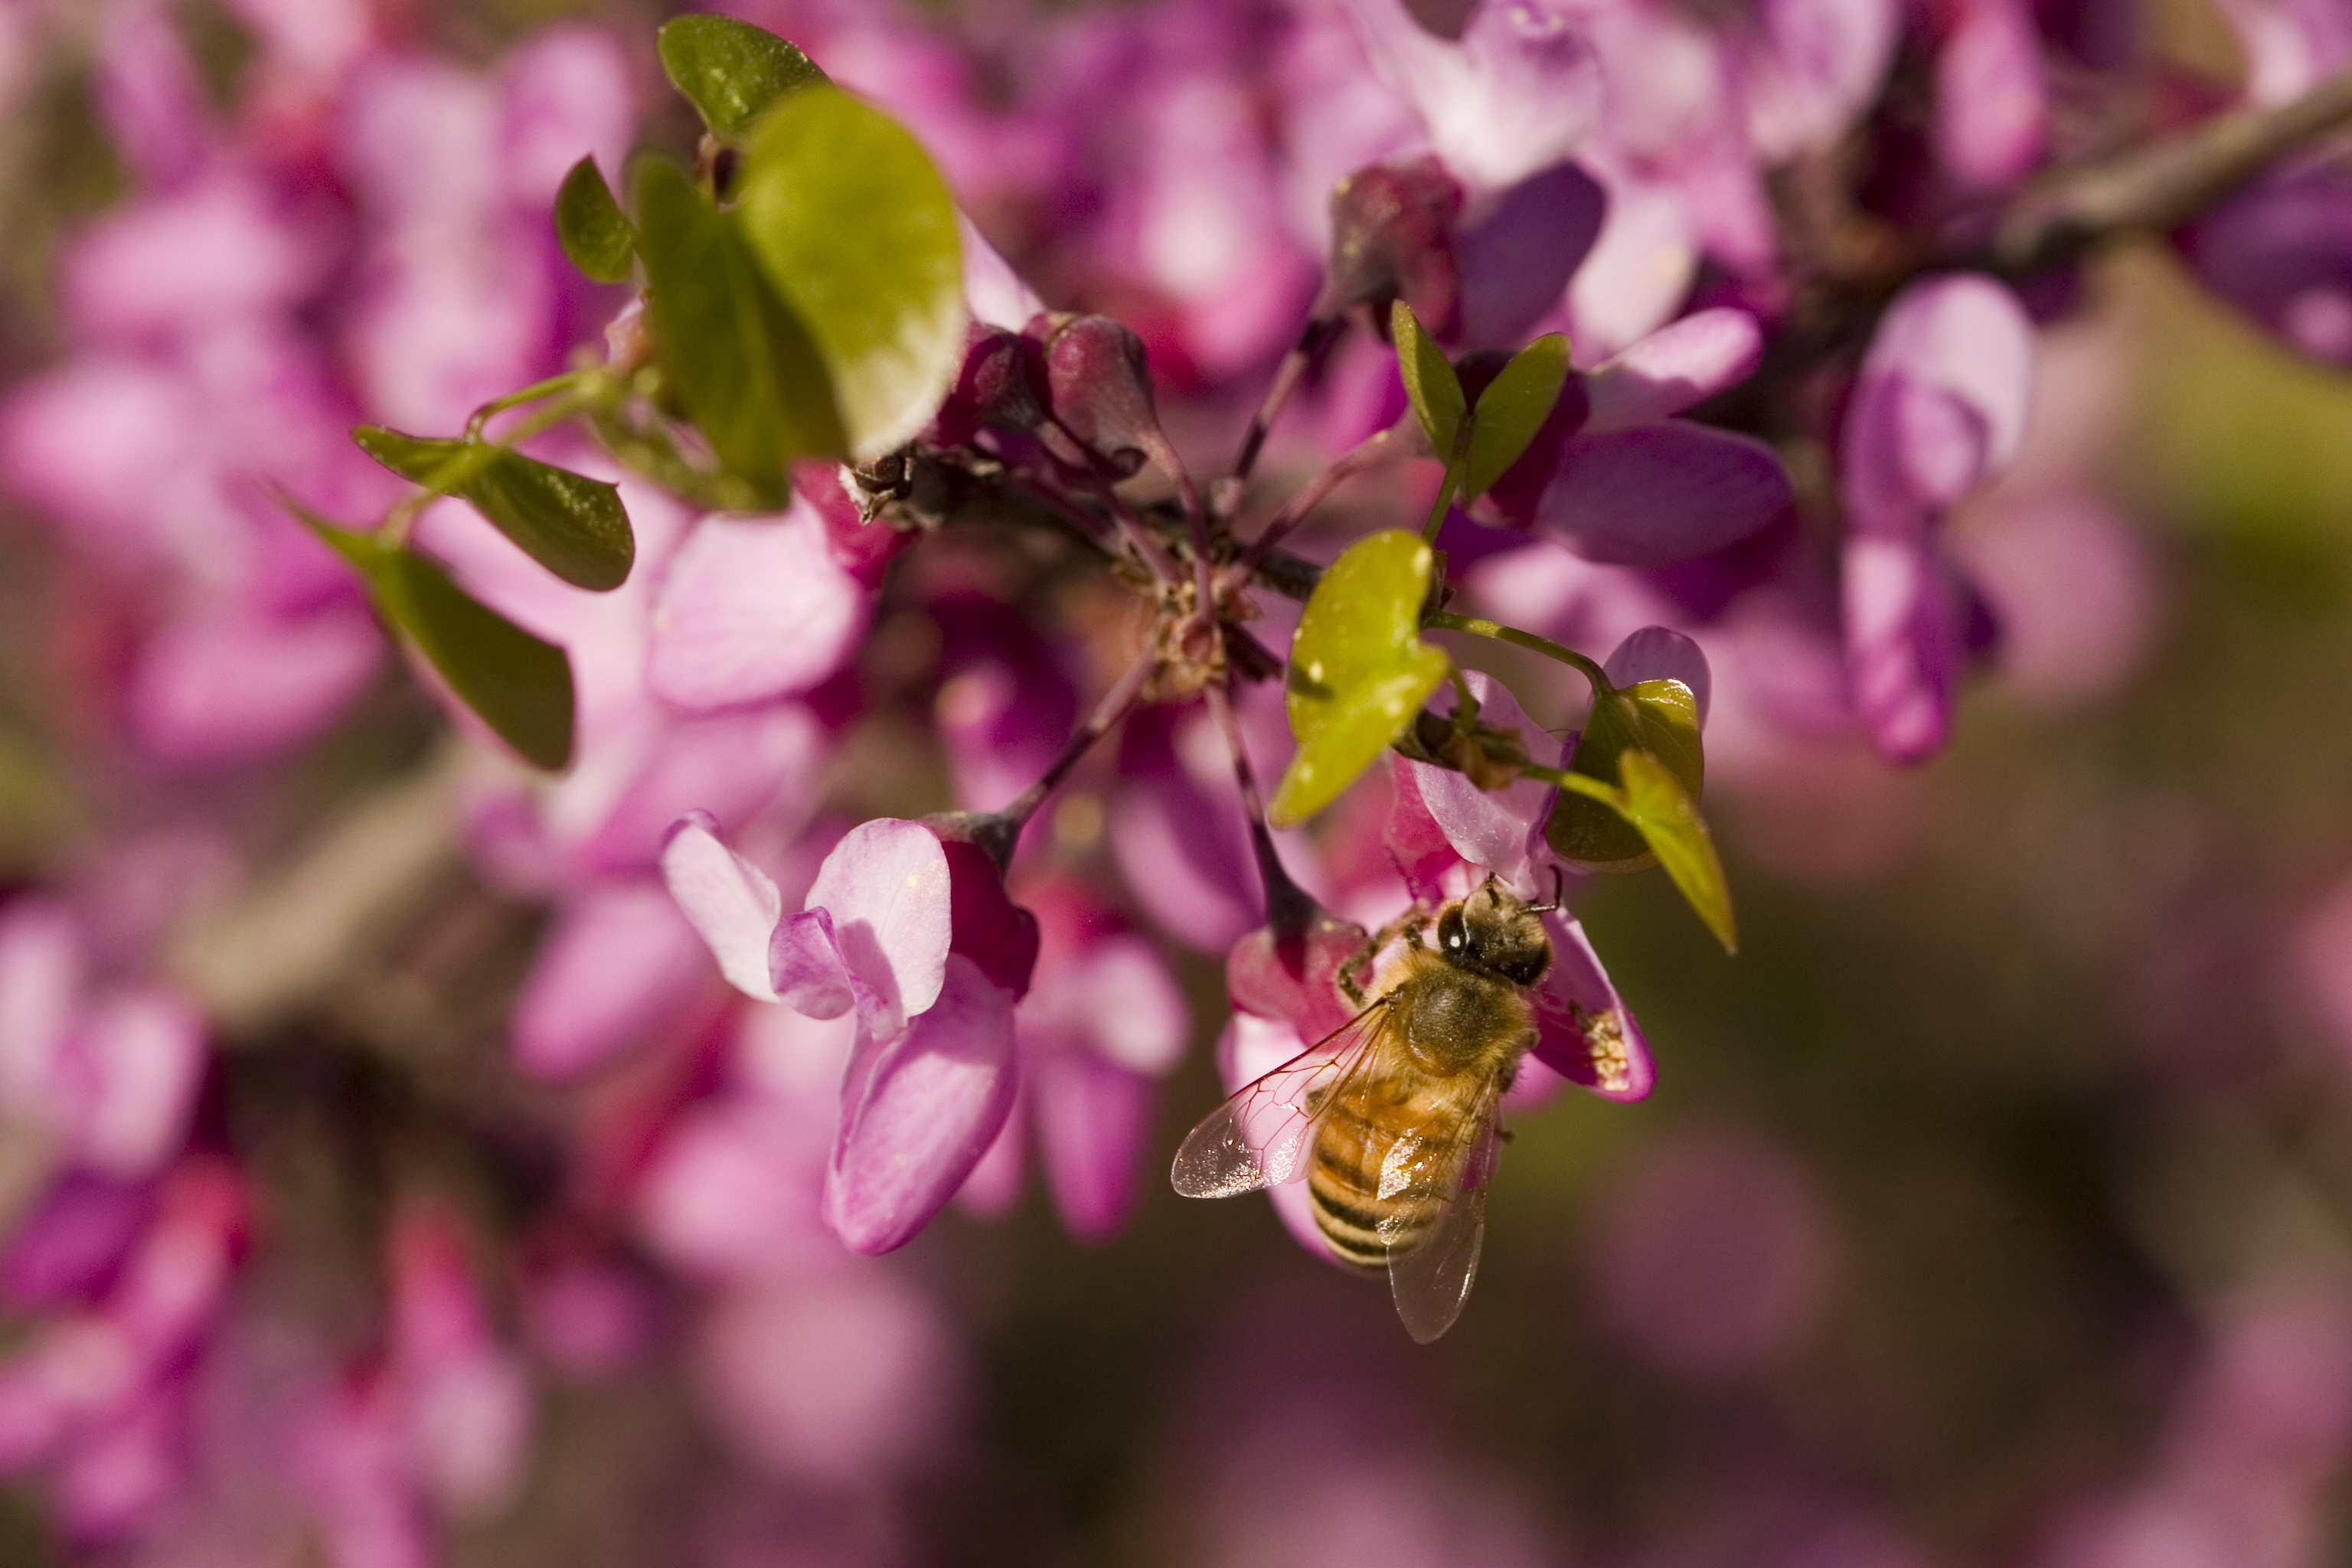 Stock photo of a bee on Western Redbud (Cercis occidentalis). Western redbud is a California native tree or shrub.